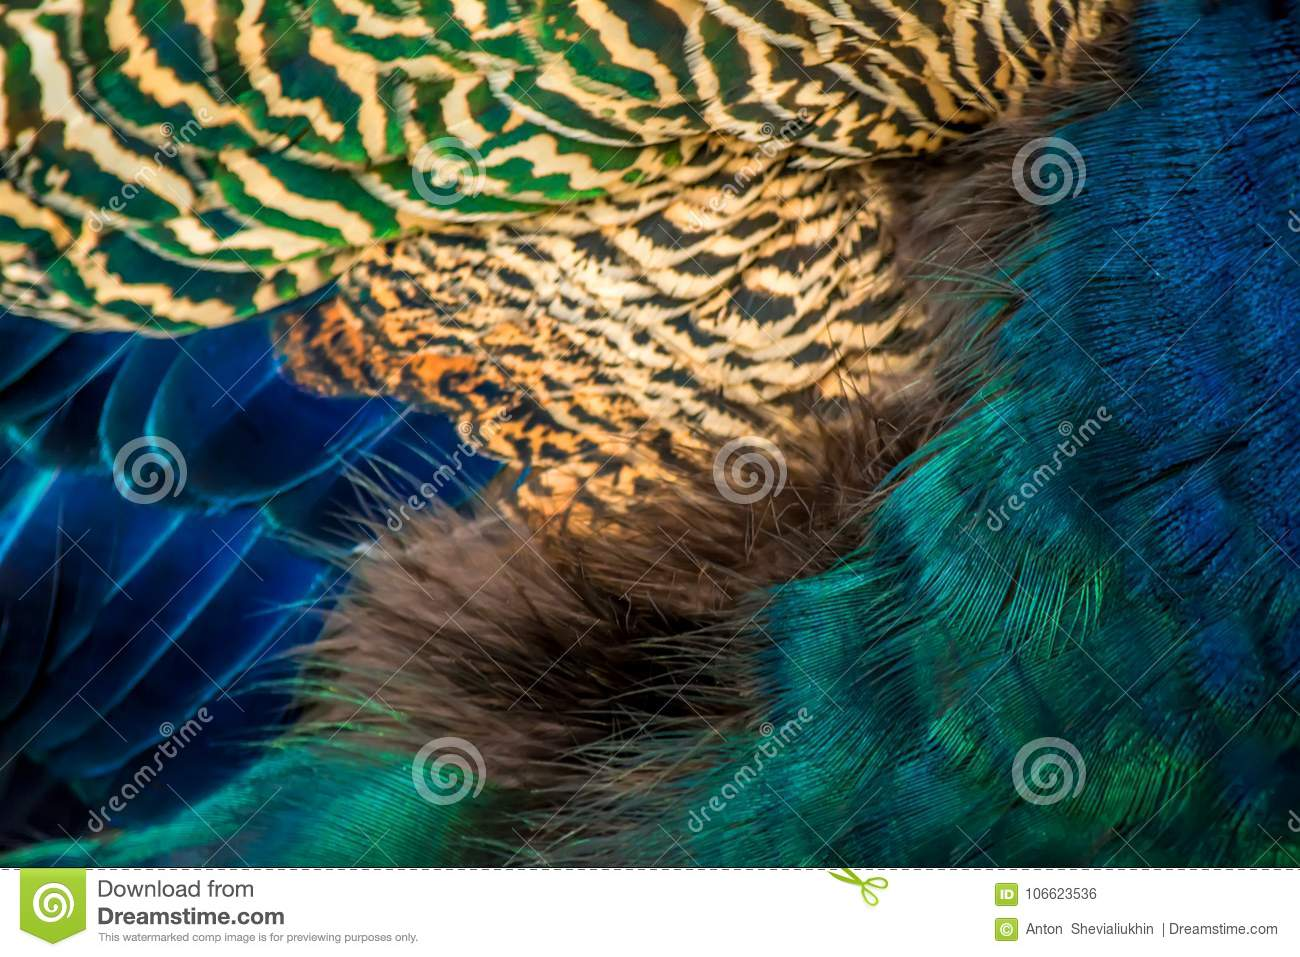 Colorful peacock feathers close-up background texture